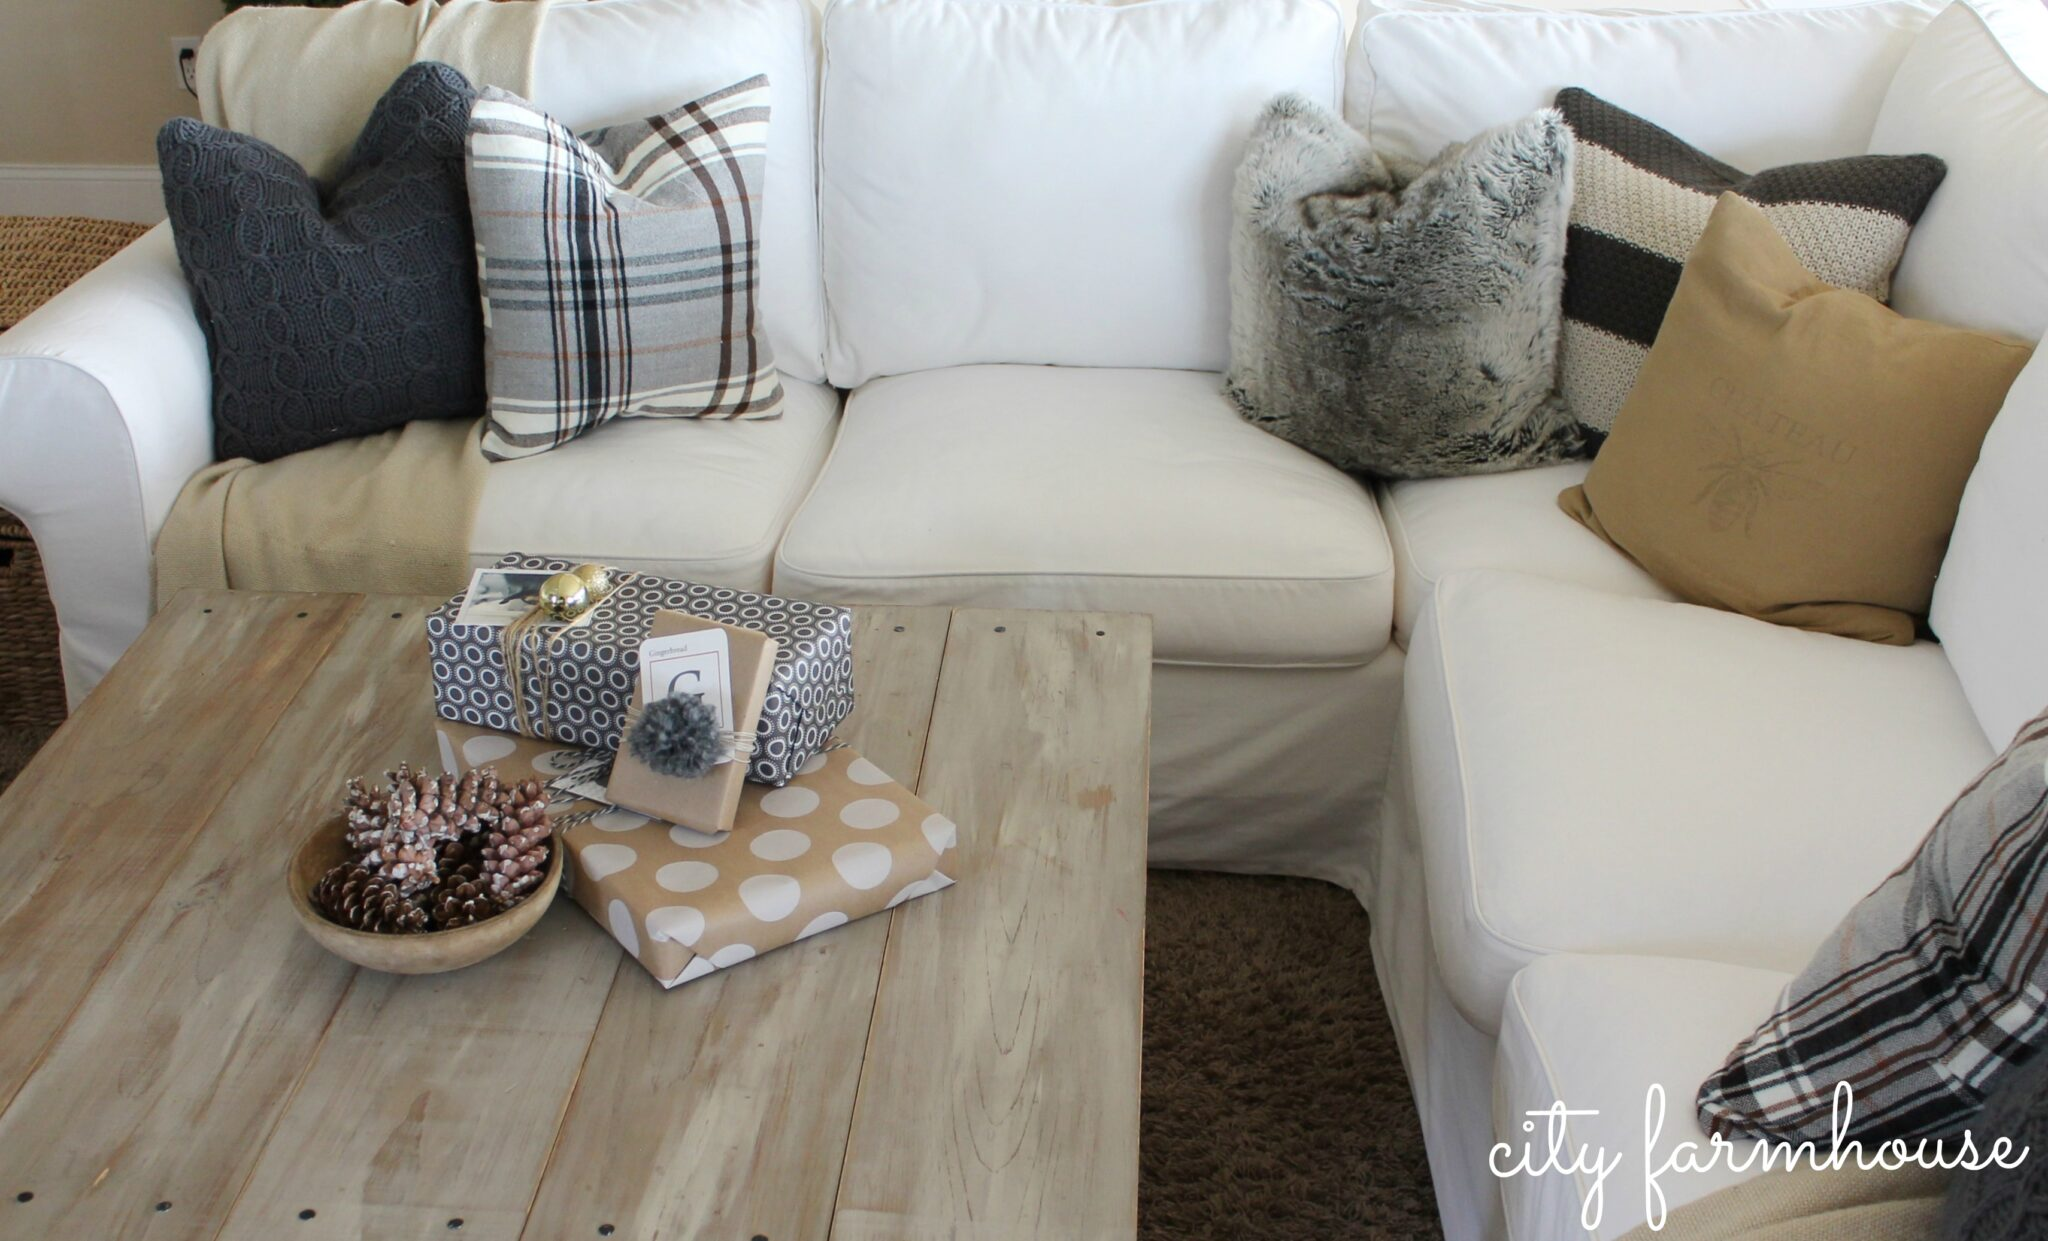 Ikea Hack DIY Plaid Pillows from a throw City Farmhouse